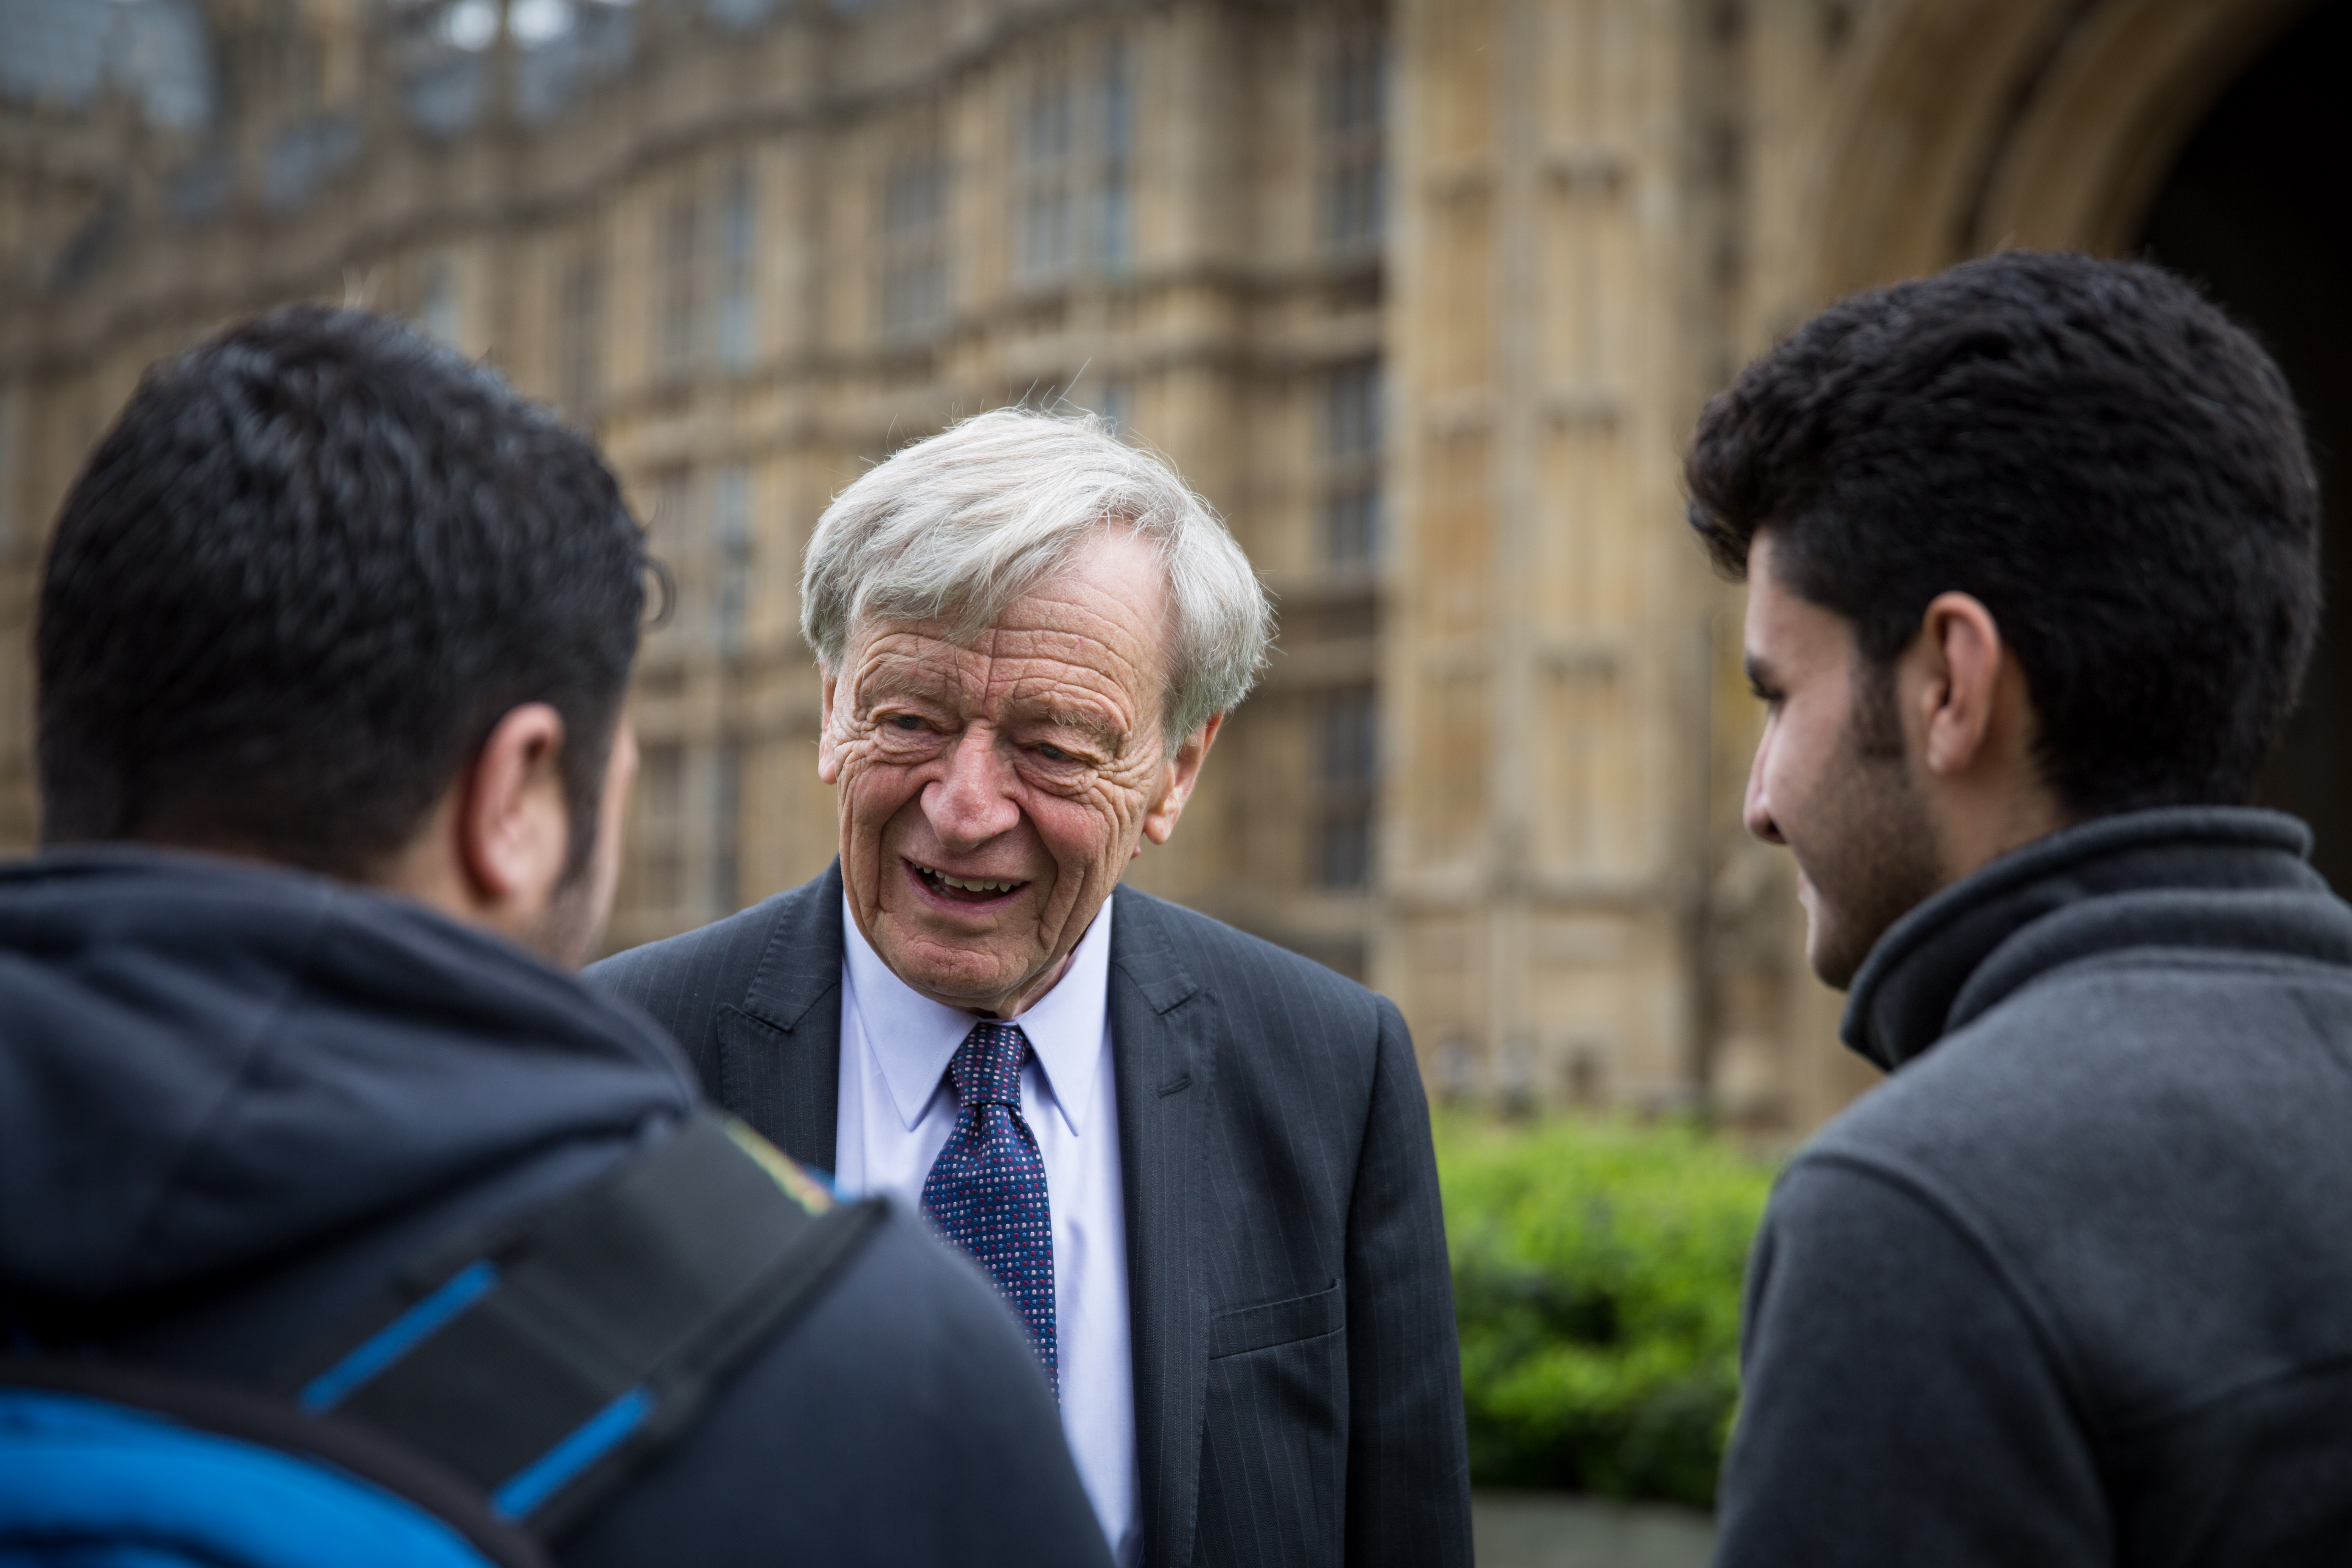 Lord Alf Dubs speaks to two child refugees from Syria on College Green on April 25, 2016 in London, England.